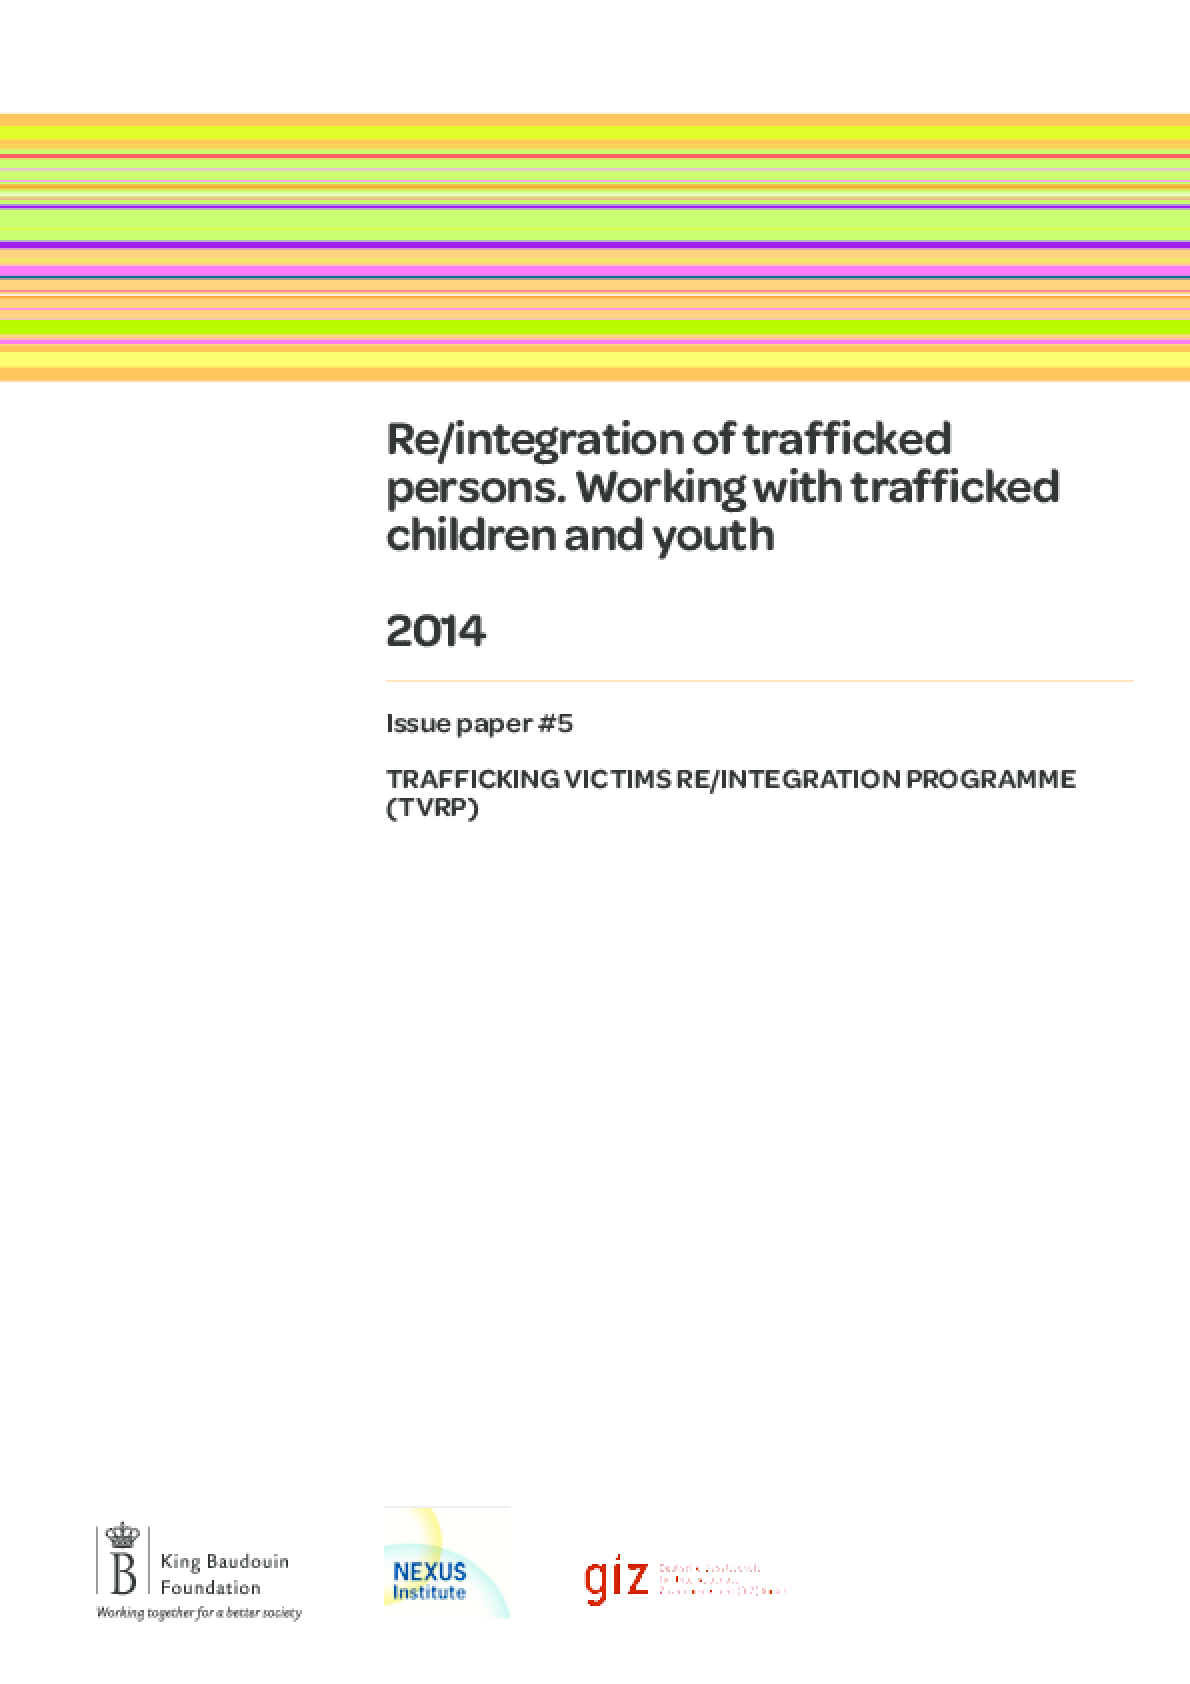 Re/integration of Trafficked persons : Working with Trafficked Children and Youth